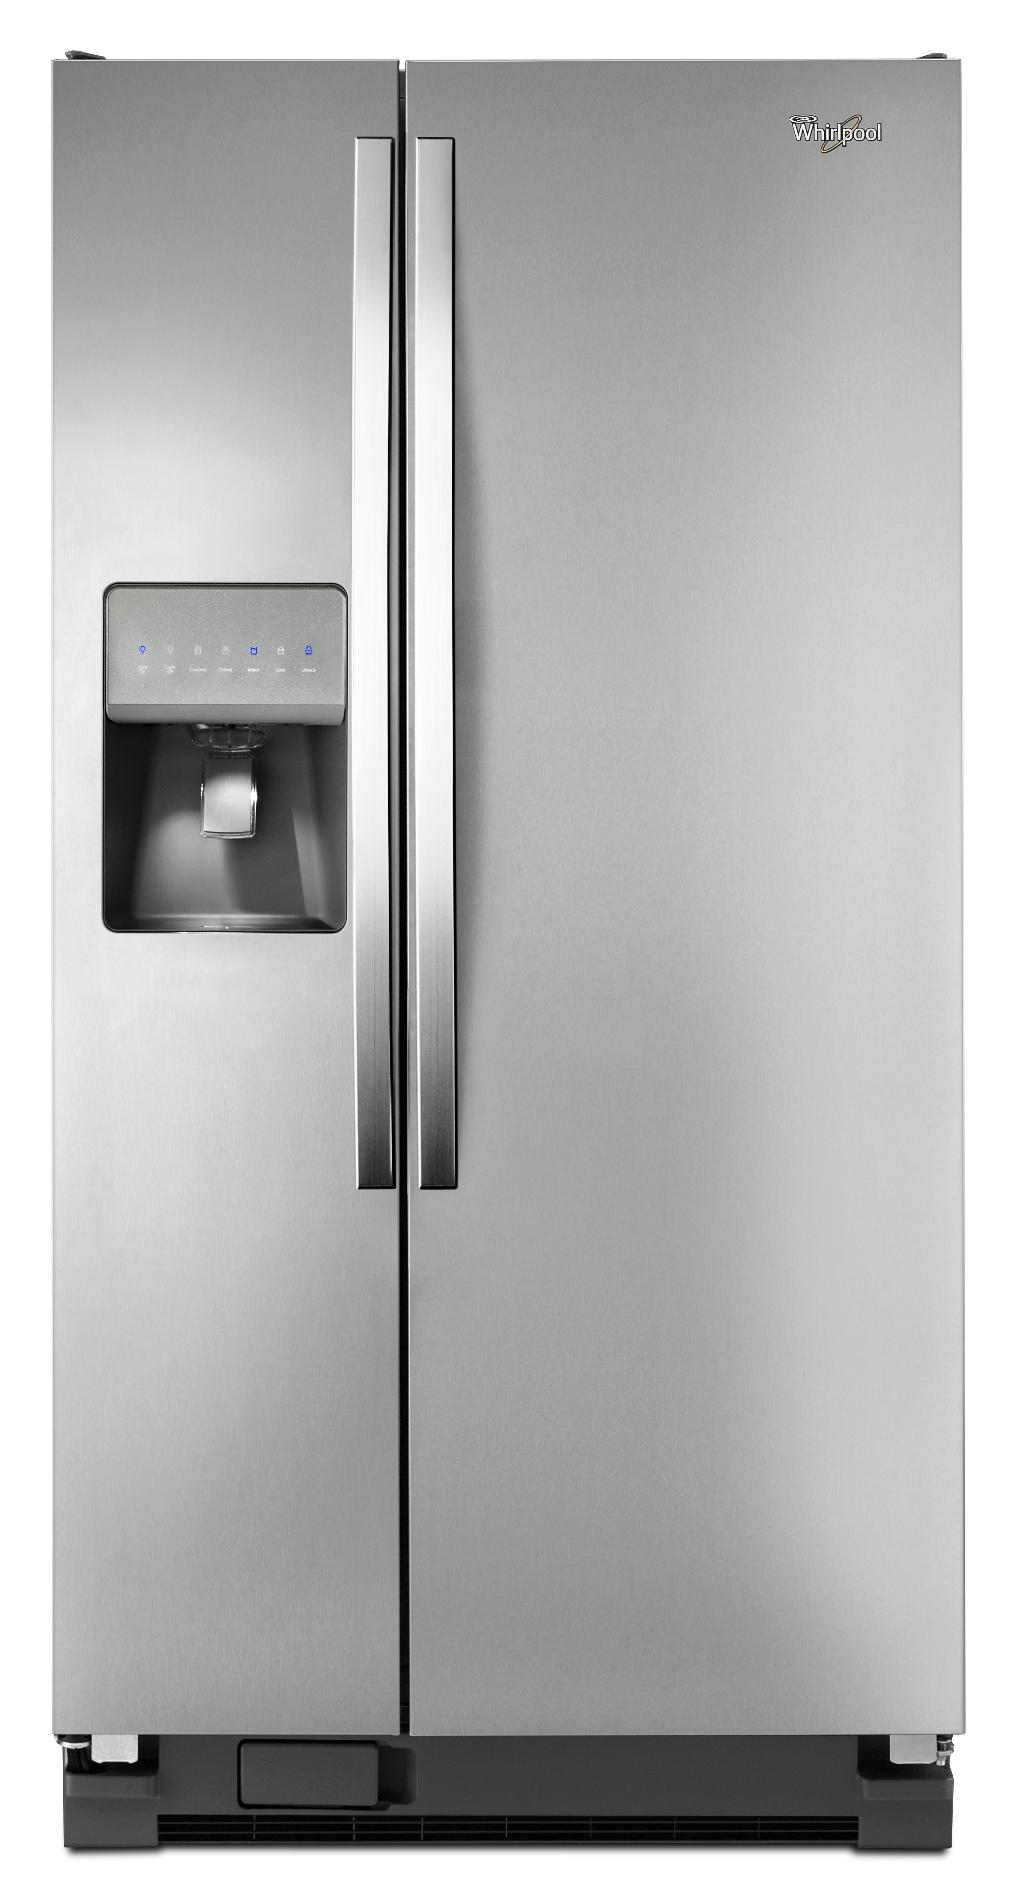 WRS322FDAM-21-cu-ft-Side-by-Side-Refrigerator-w-Accu-Chill-Stainless-Steel